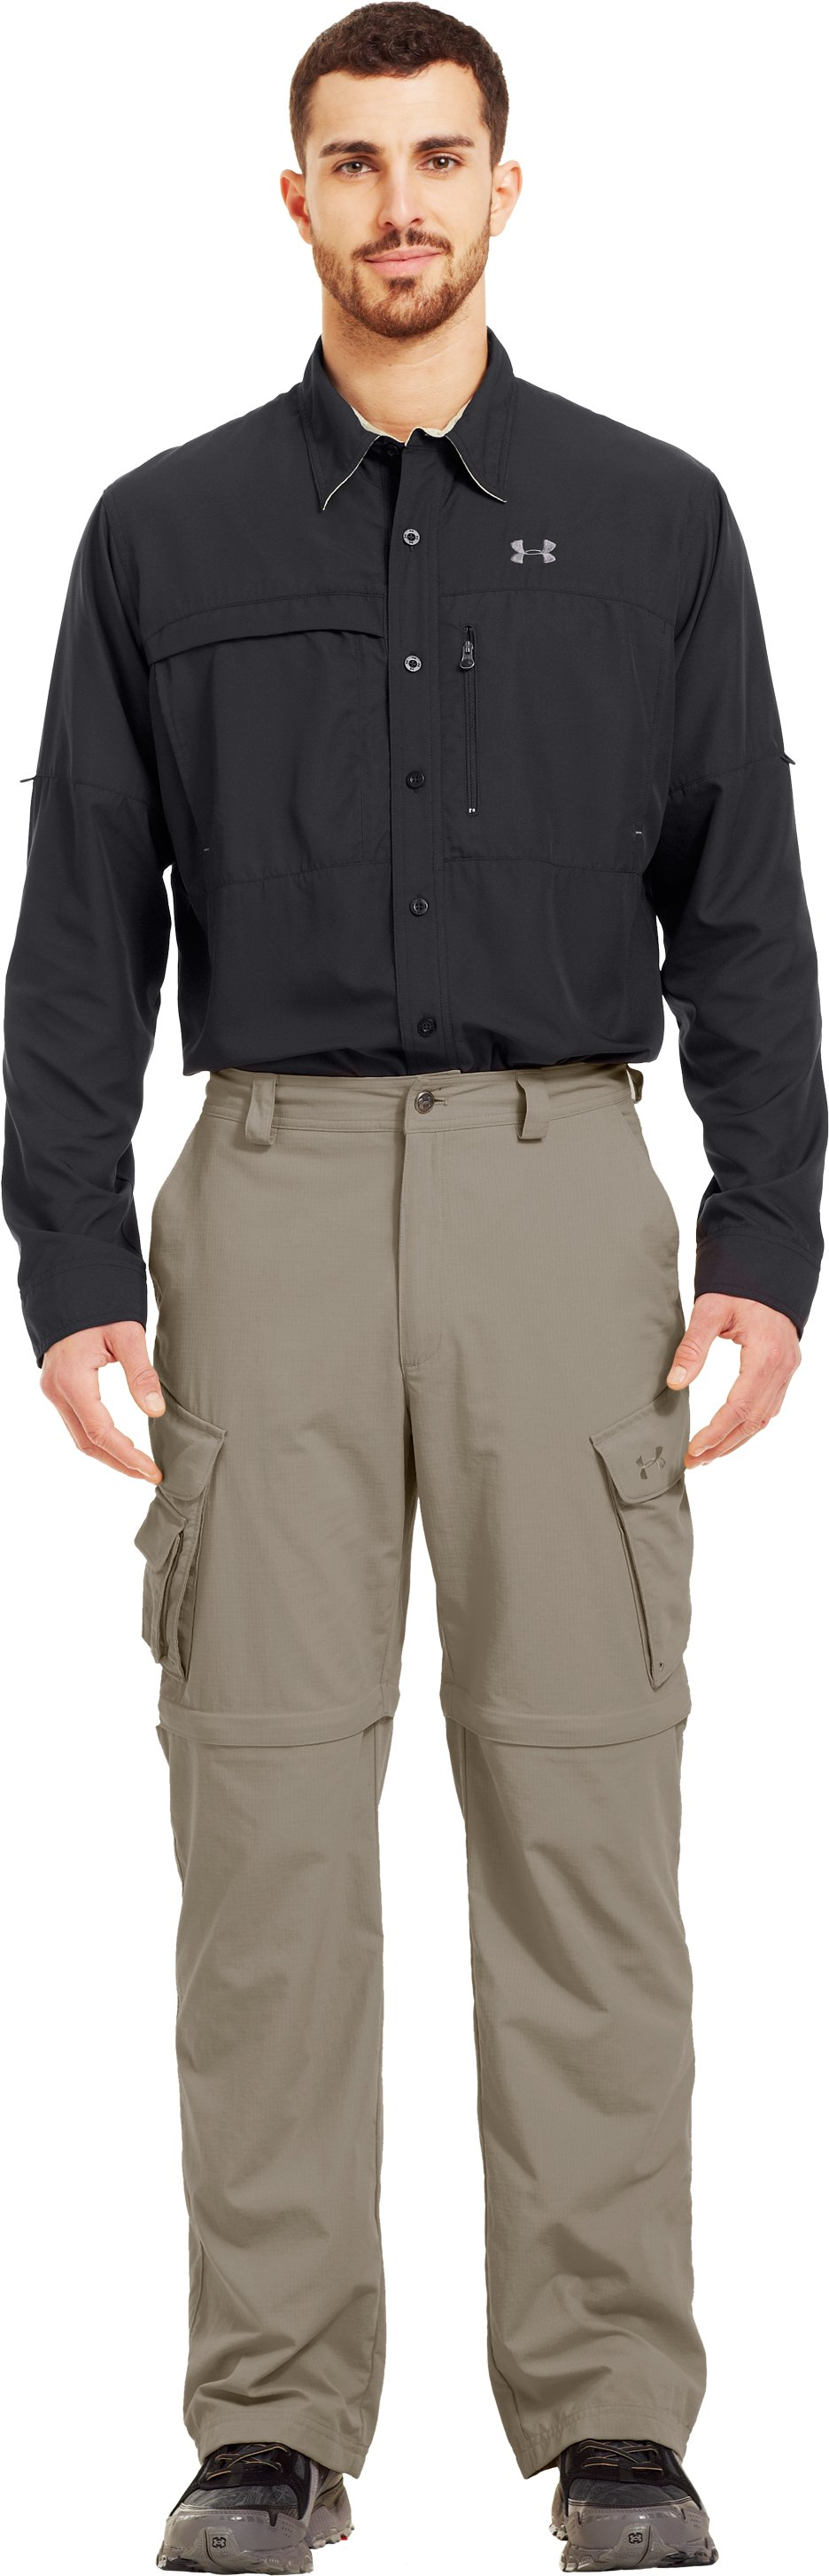 Men's UA Guide Zip-Off Trail Pants III, BRANCH, zoomed image